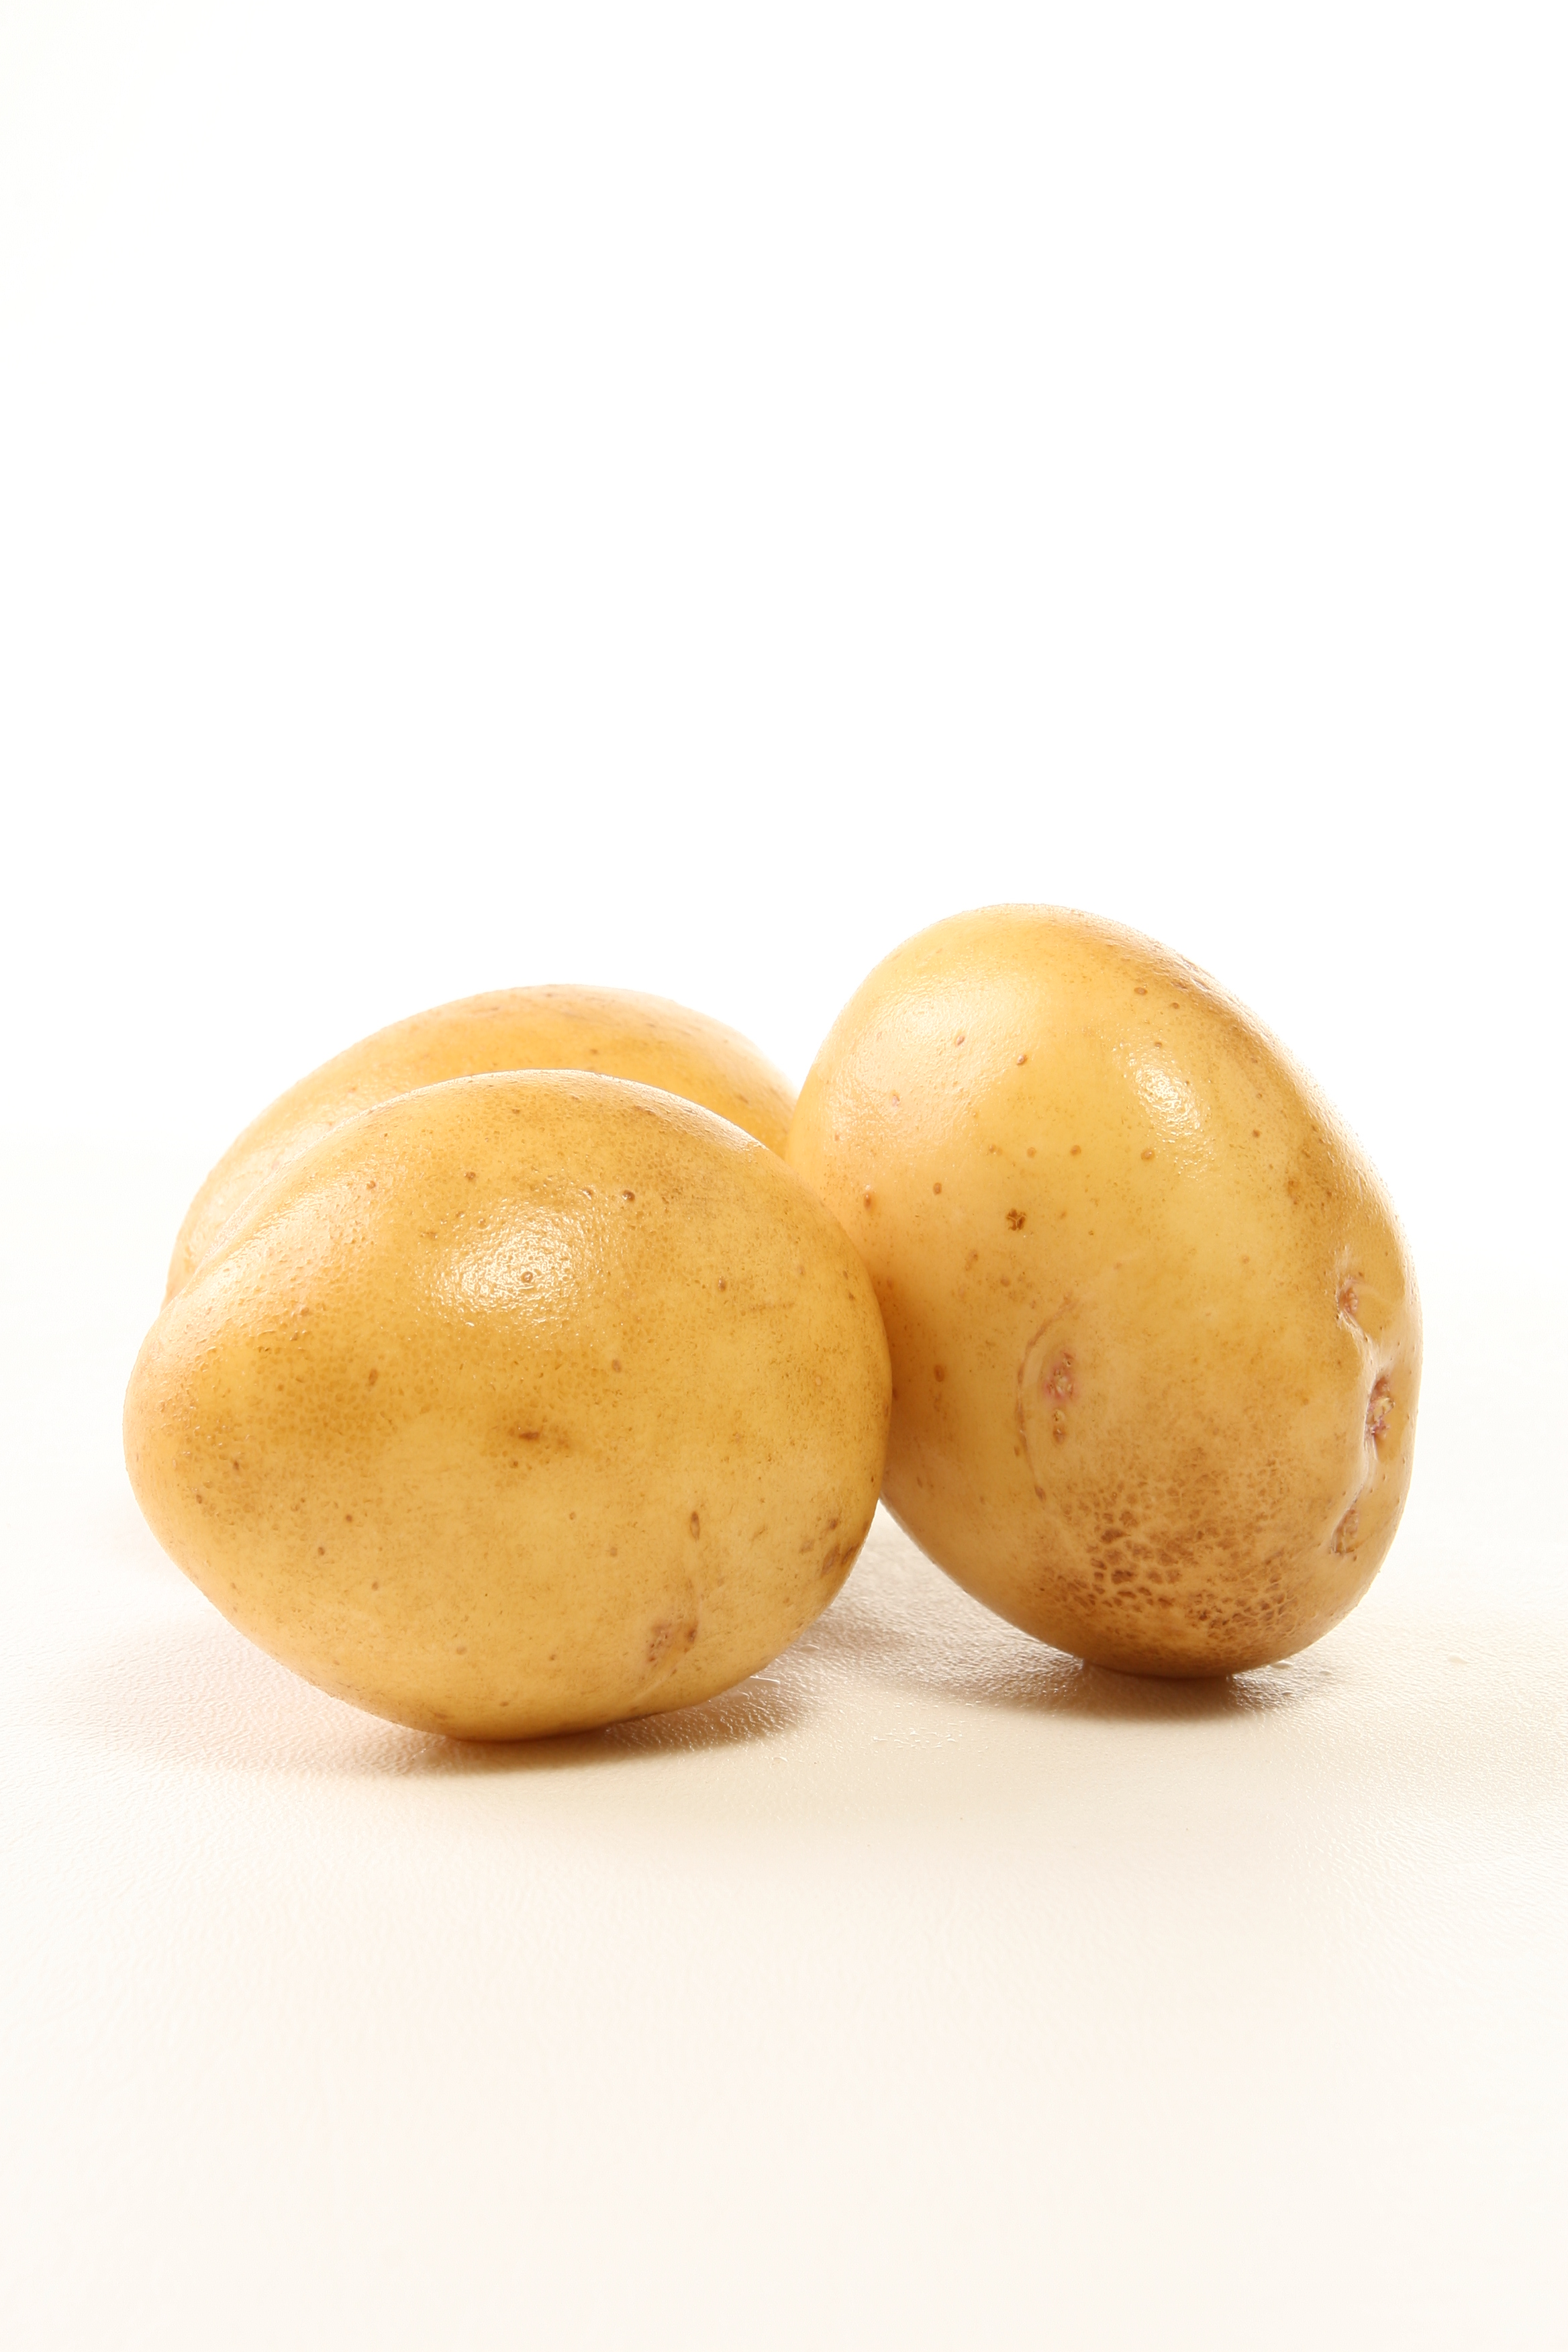 Florida produce potatoes fresh from florida - What to do with potatoes ...